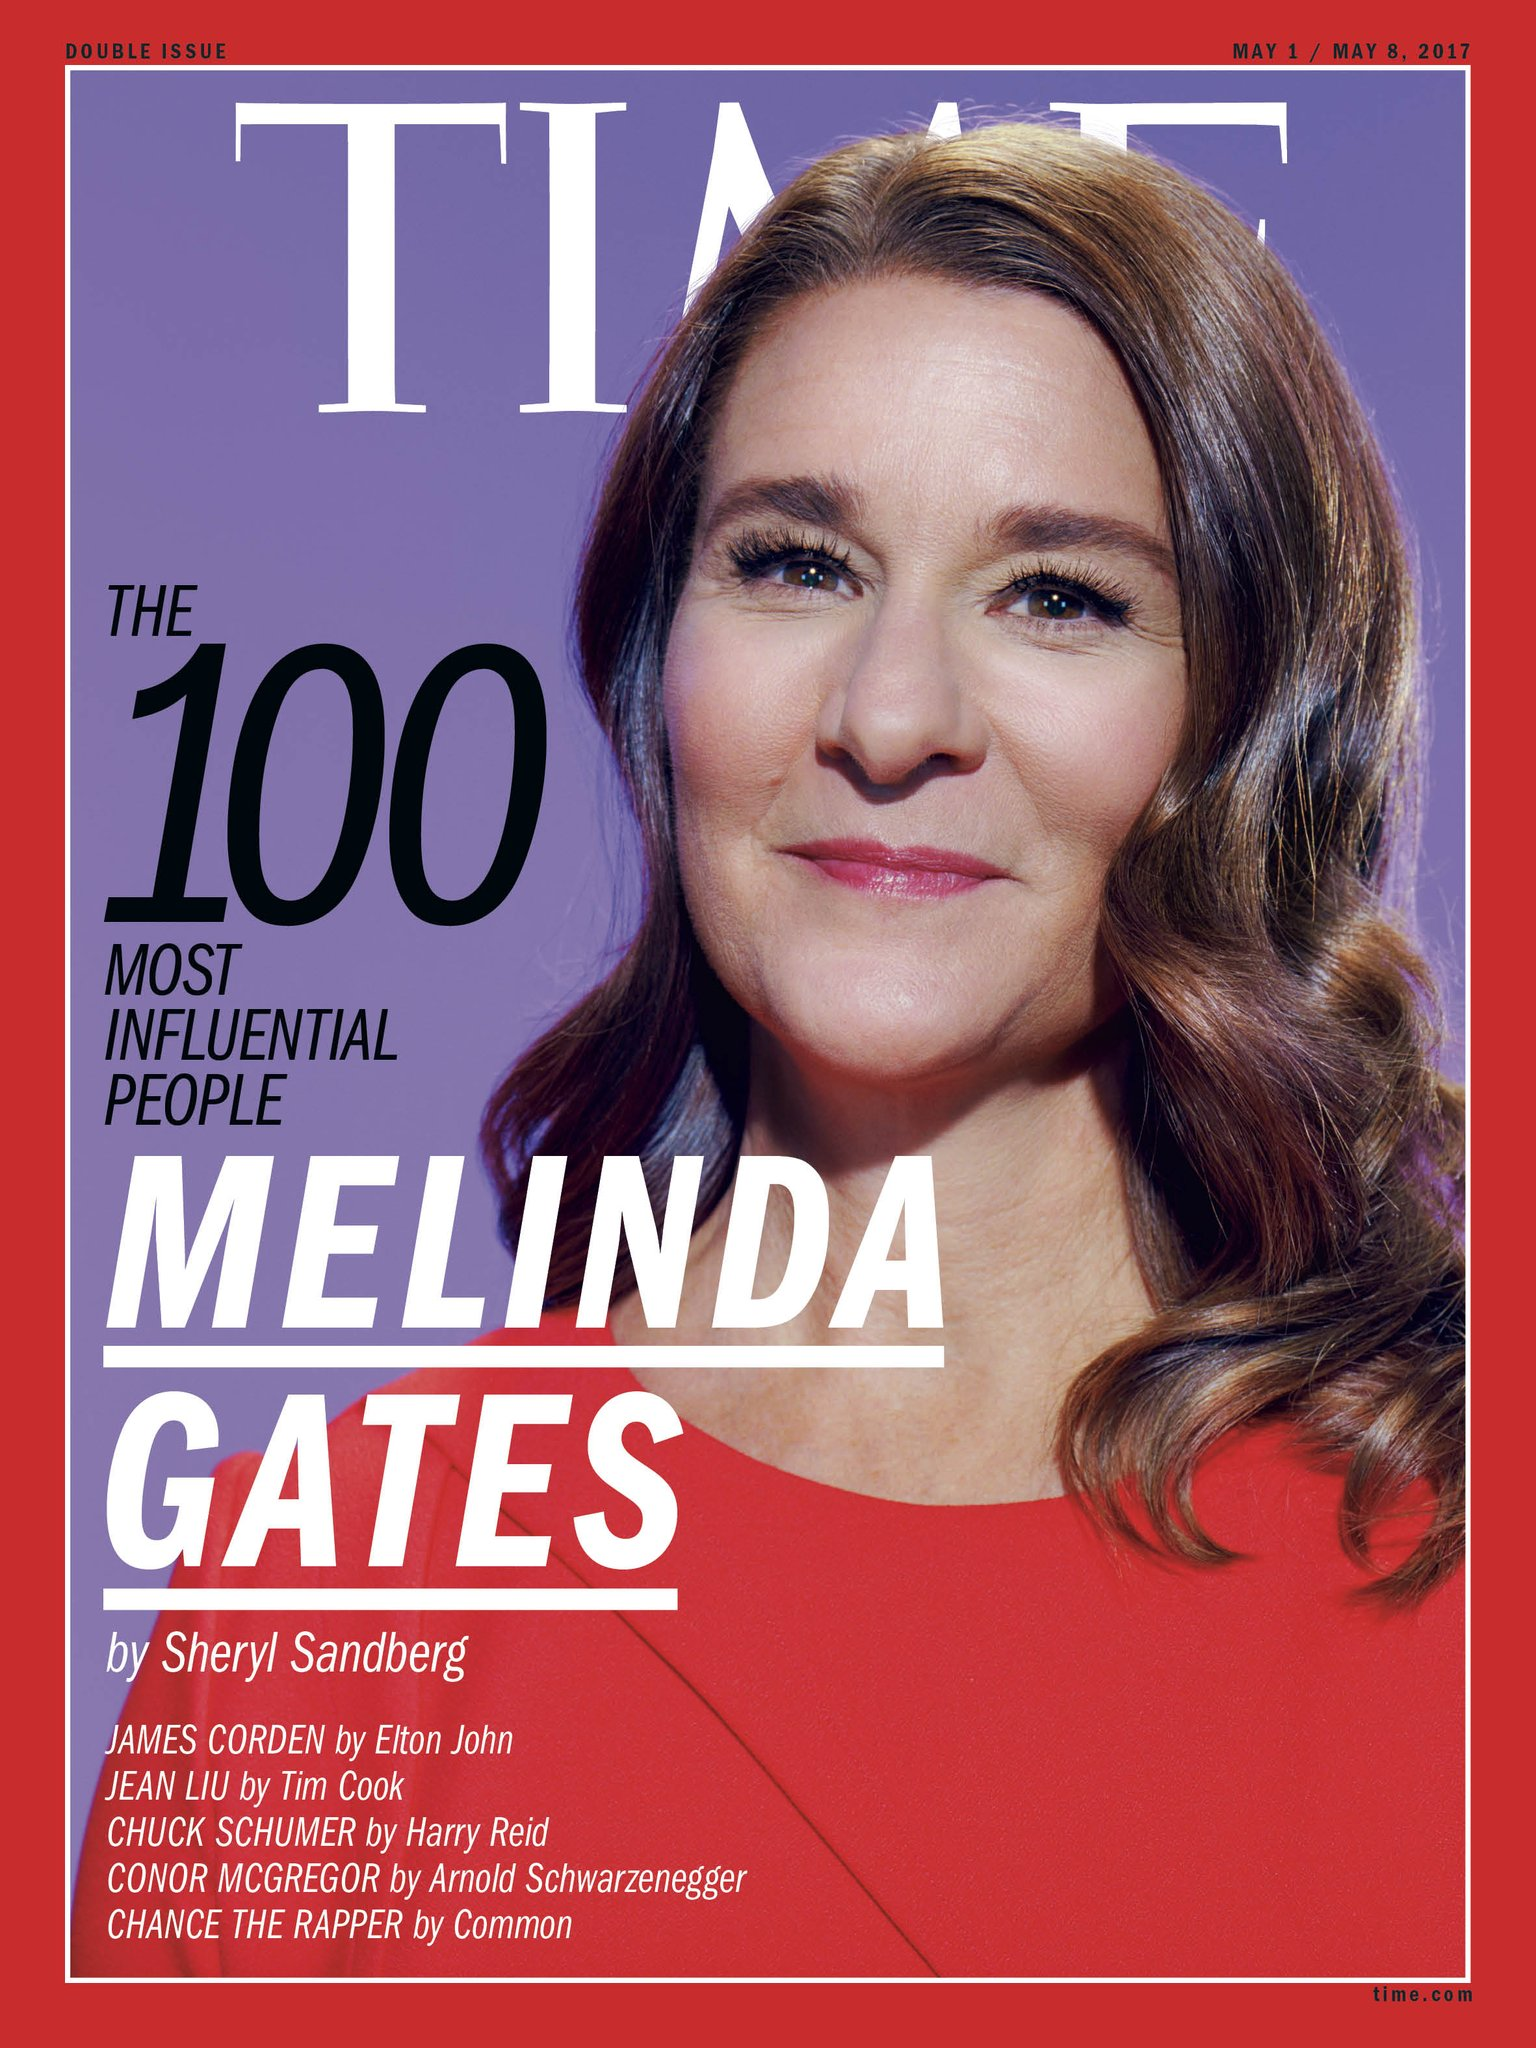 ".@SherylSandberg shares the many ways @MelindaGates' impact ""will be felt for generations to come"" #TIME100 https://t.co/J1LjTgqnLV https://t.co/MXK0Nc35pw"